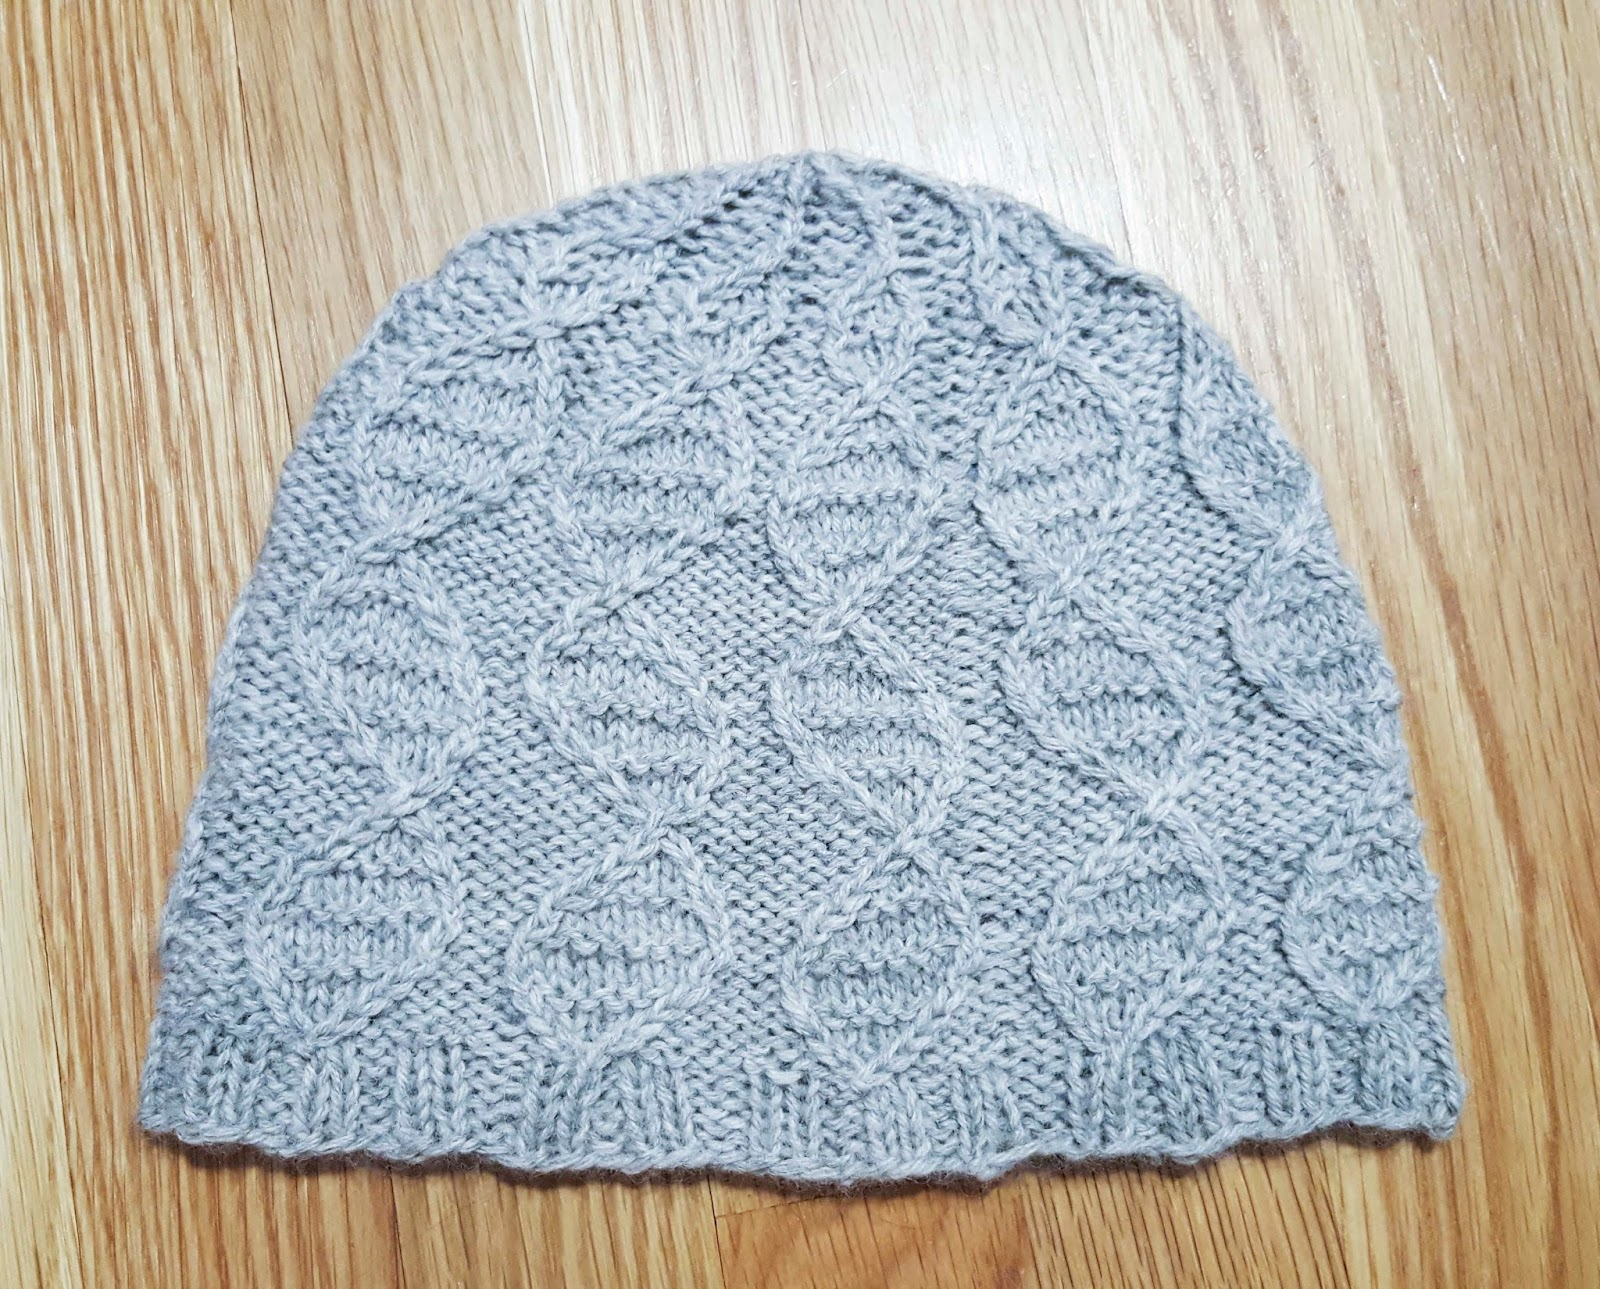 Chemknits geneie knitting pattern cable version geneie knitting pattern cable version bankloansurffo Image collections